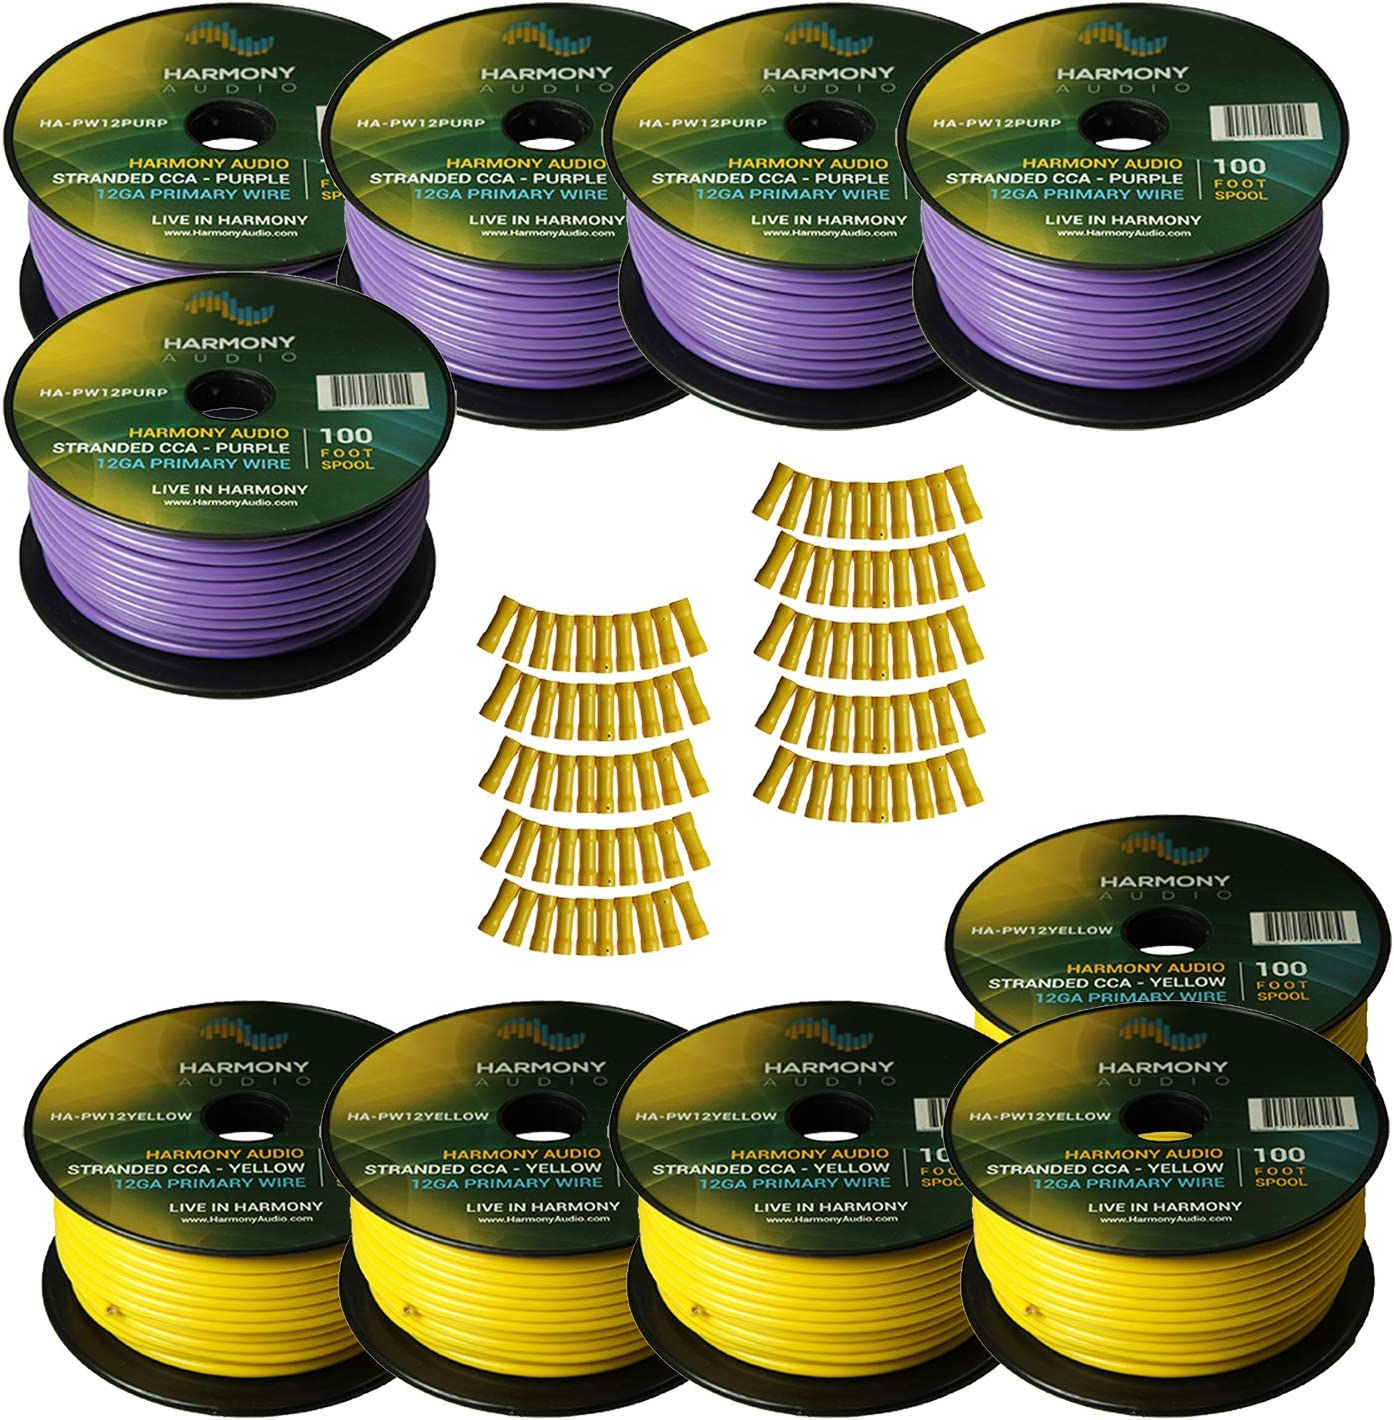 B07L6N9R9G Harmony Audio Primary Single Conductor 12 Gauge Power or Ground Wire - 10 Rolls - 1000 Feet - Yellow & Purple for Car Audio/Trailer/Model Train/Remote 81zddquO2B-L.SL1500_